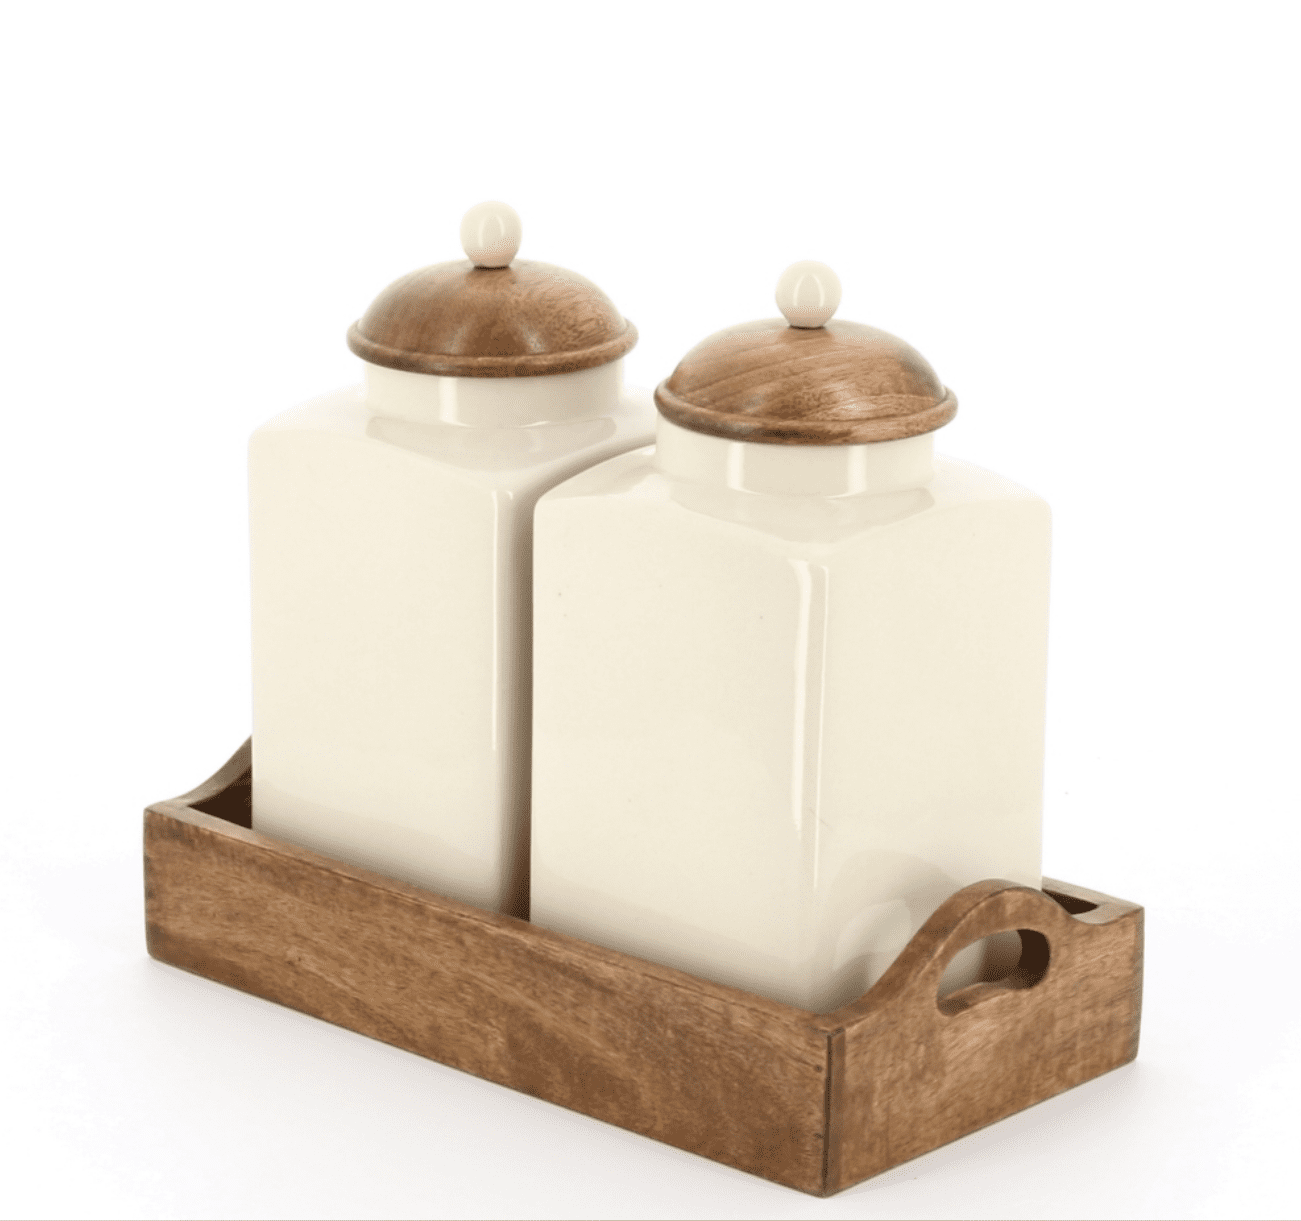 Country kitchen large sugar and flour set in wooden tray, wooden lids with ceramic knobs, side view